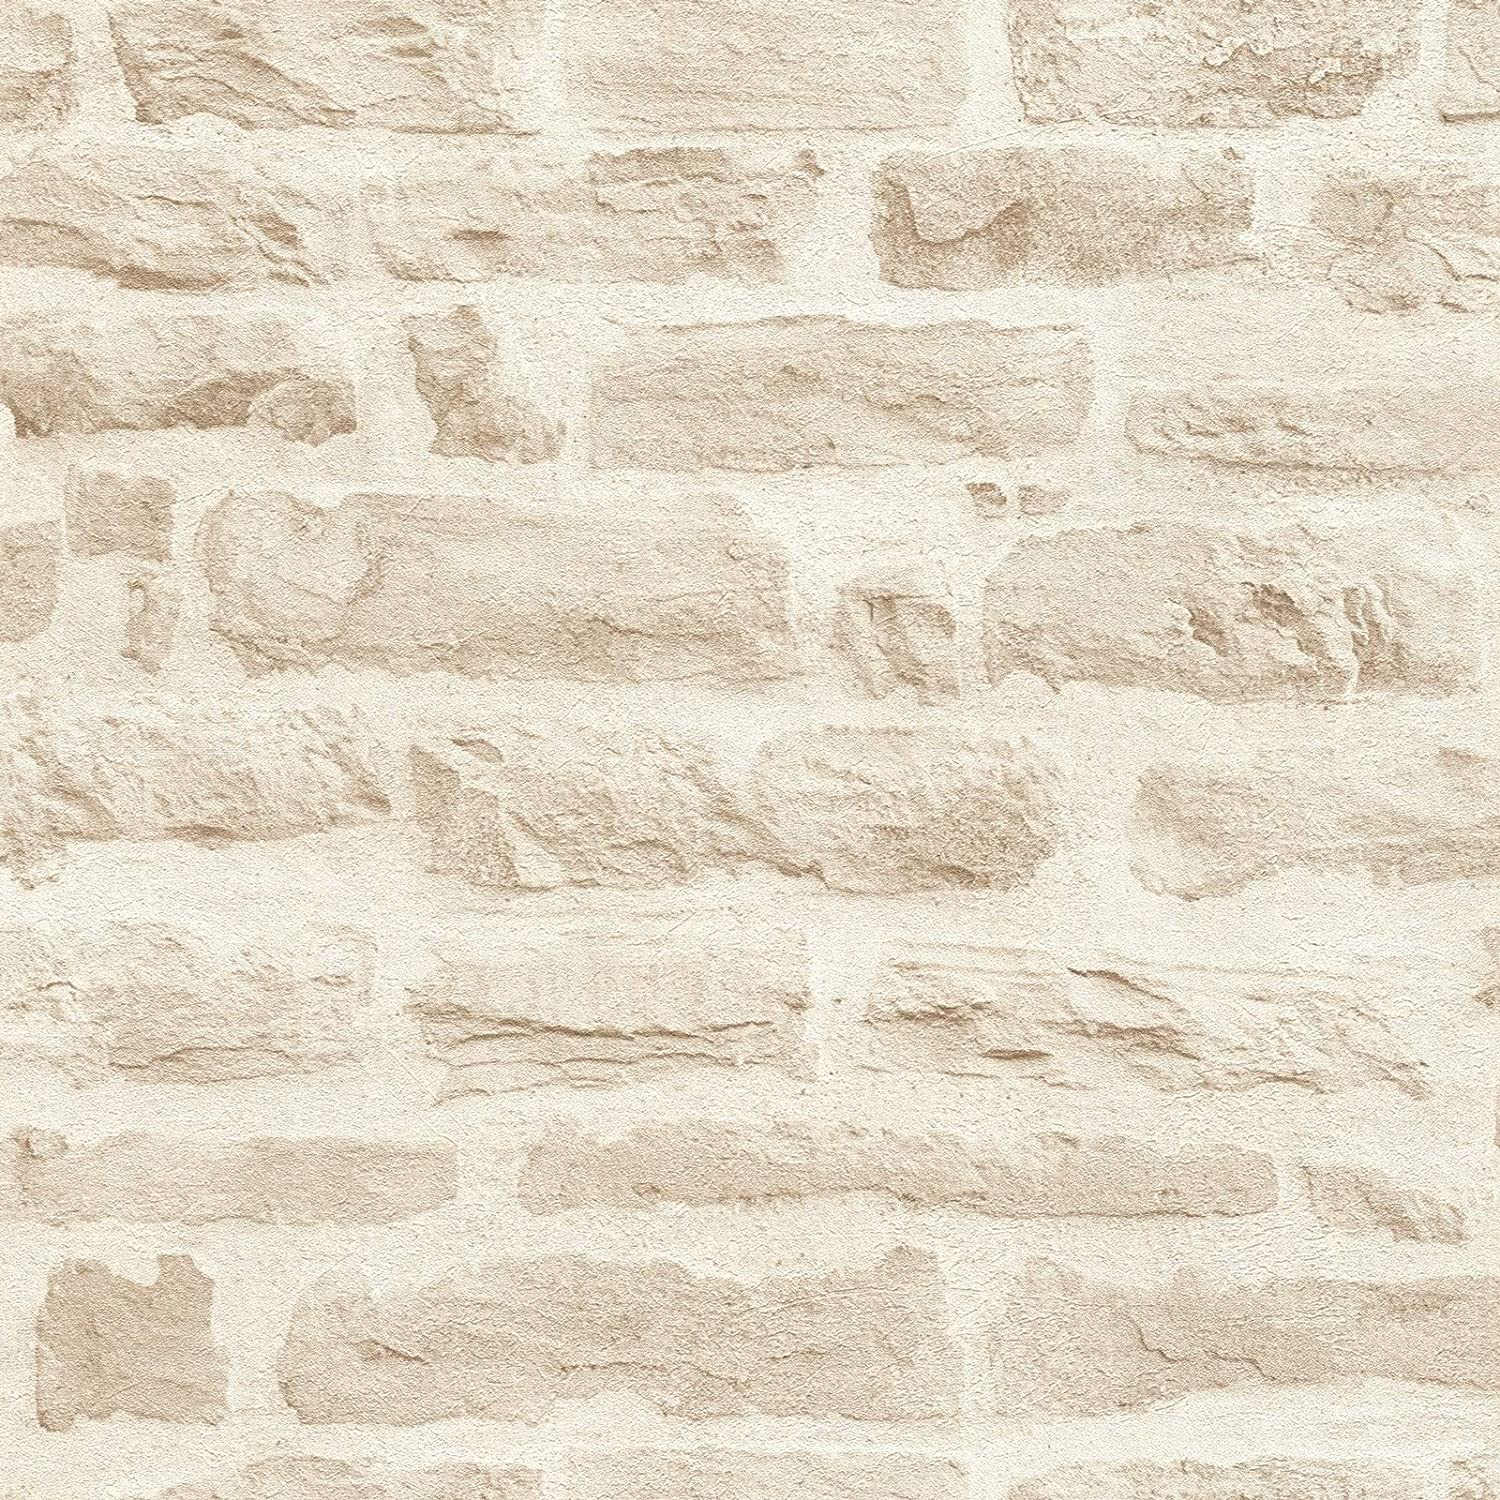 Rollo Cr/éation Best of Wood`n Stone 2nd Edition Papel pintado tnt ladrillo Papel imitacion piedra Papel imitacion ladrillo oficina beige 355803 35580-3 A.S beige 10,05 x 0,53 m = 5,33 m/²